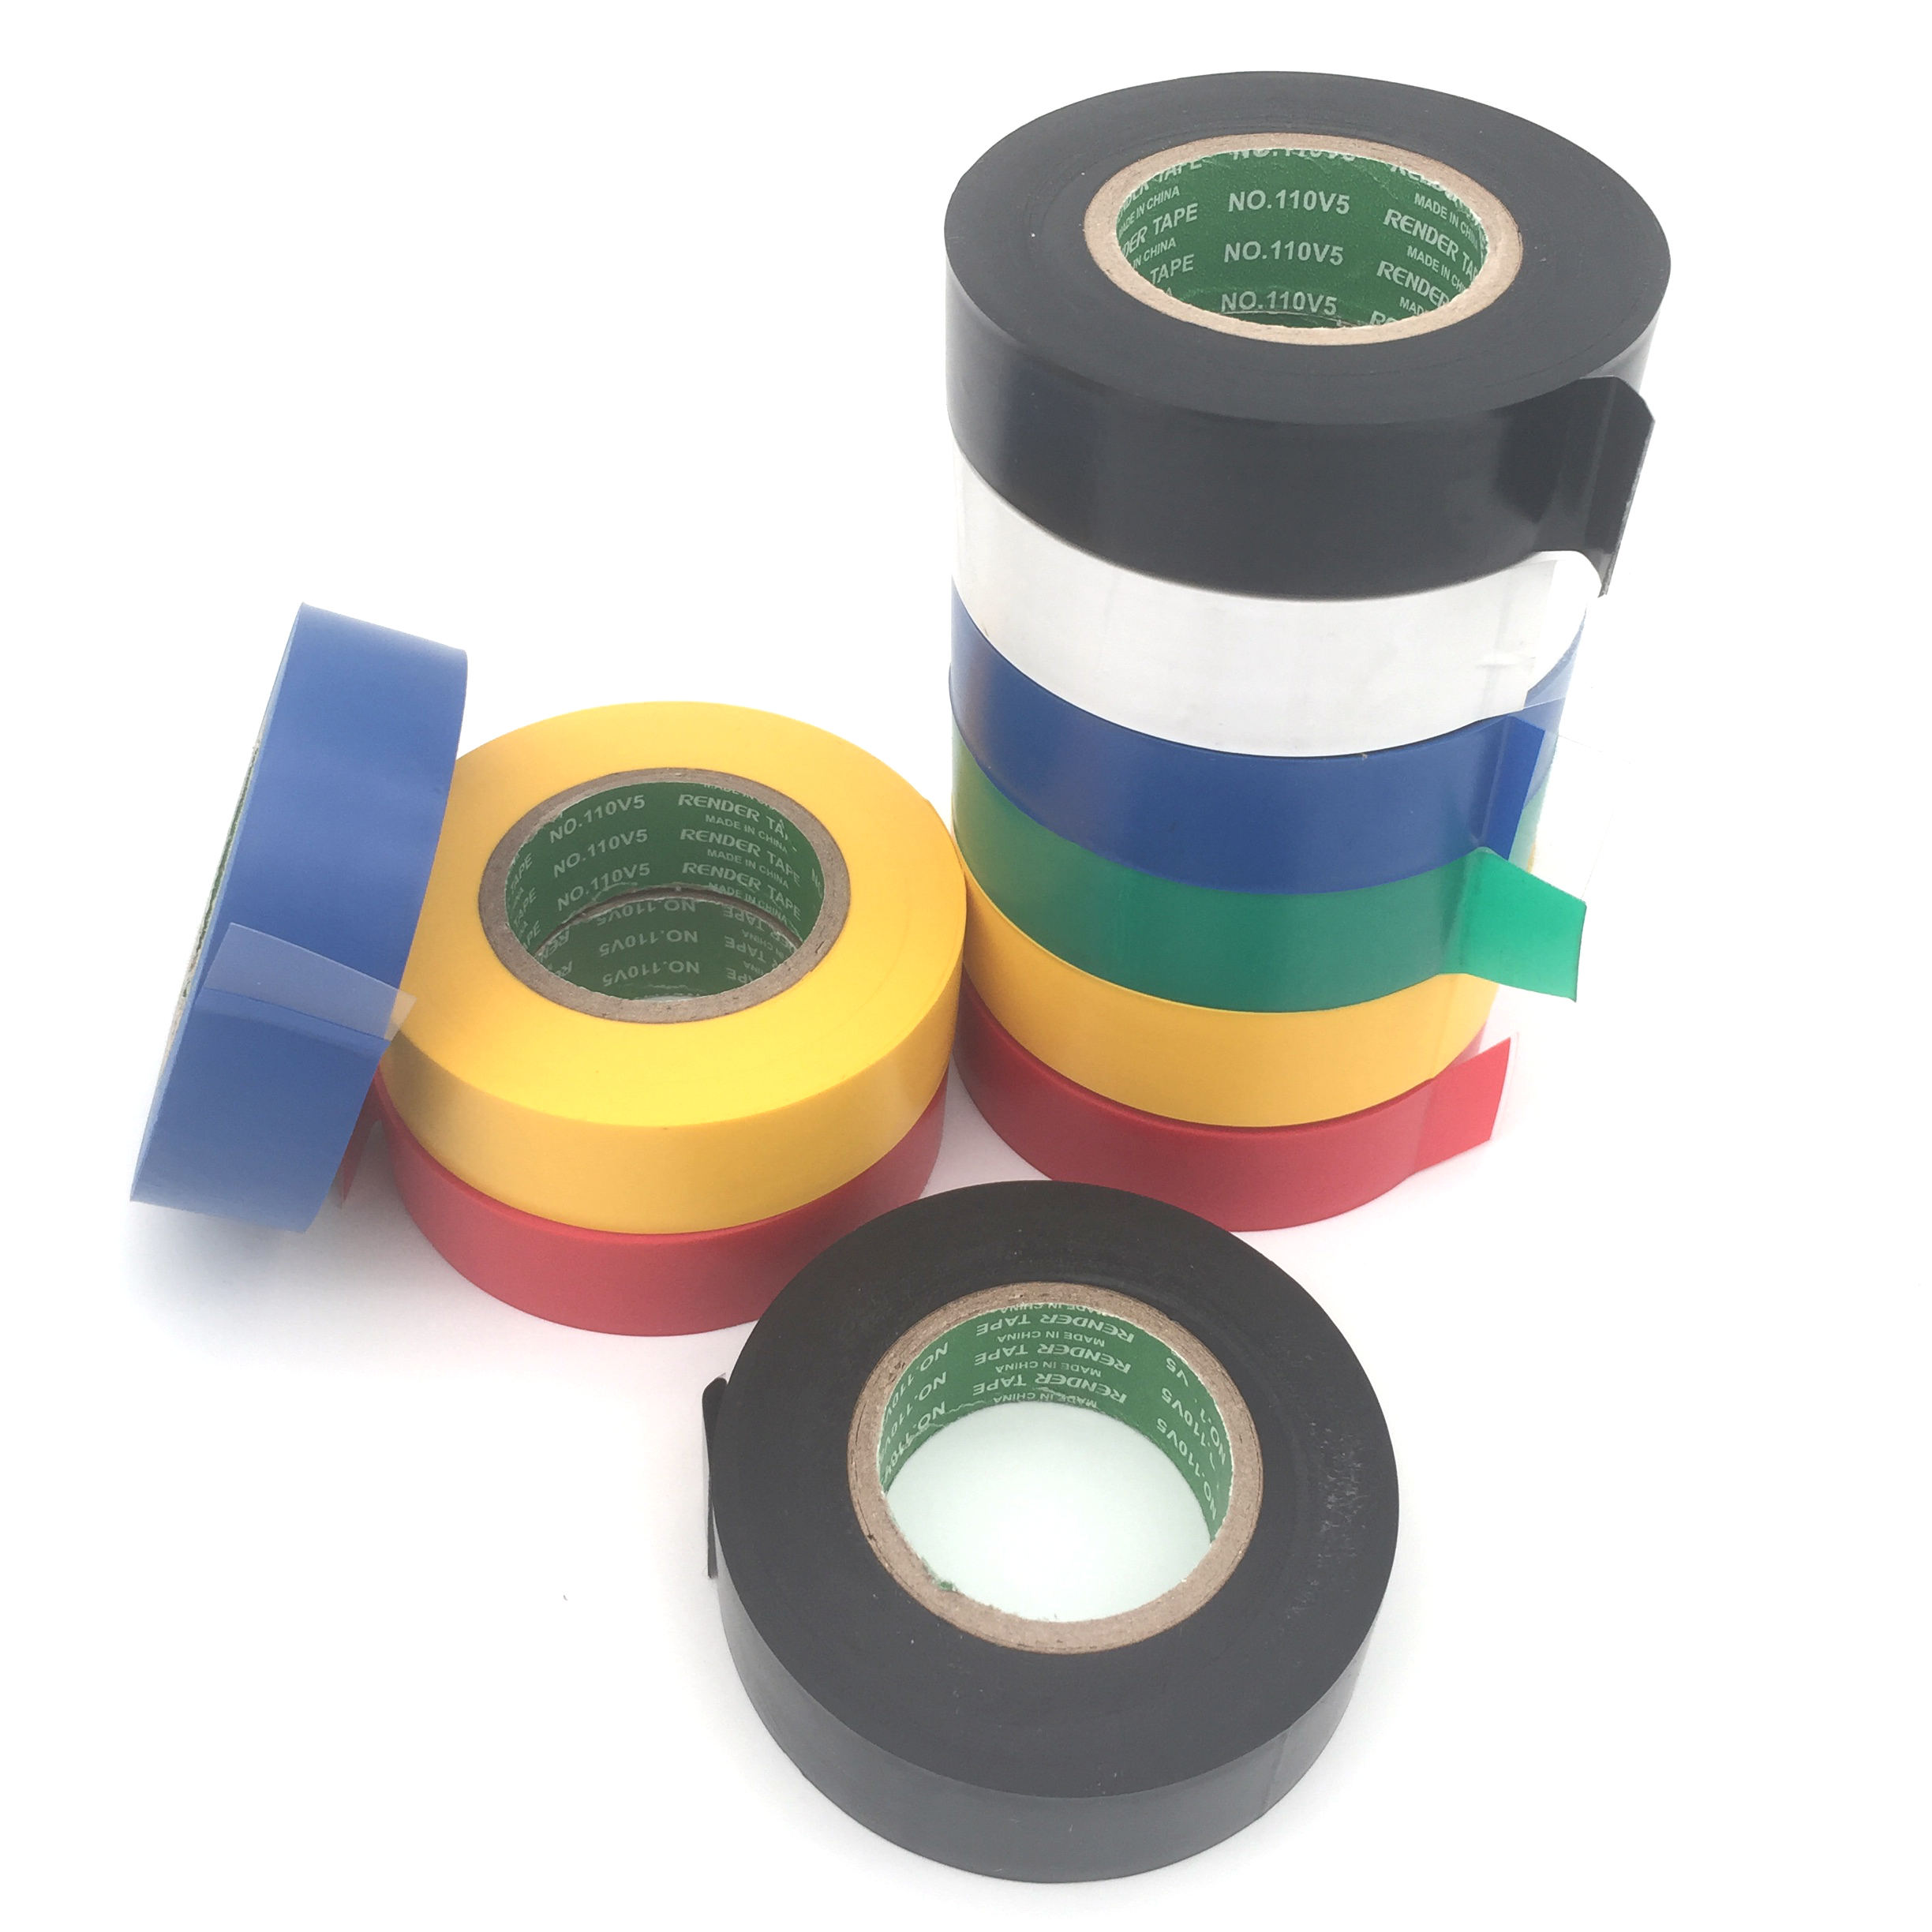 18mmx27m PVC Electrical Tape Electrical Insulation Adhesive Tape Waterproof Repair Tape For Cable Wiring Loom Harness Tape